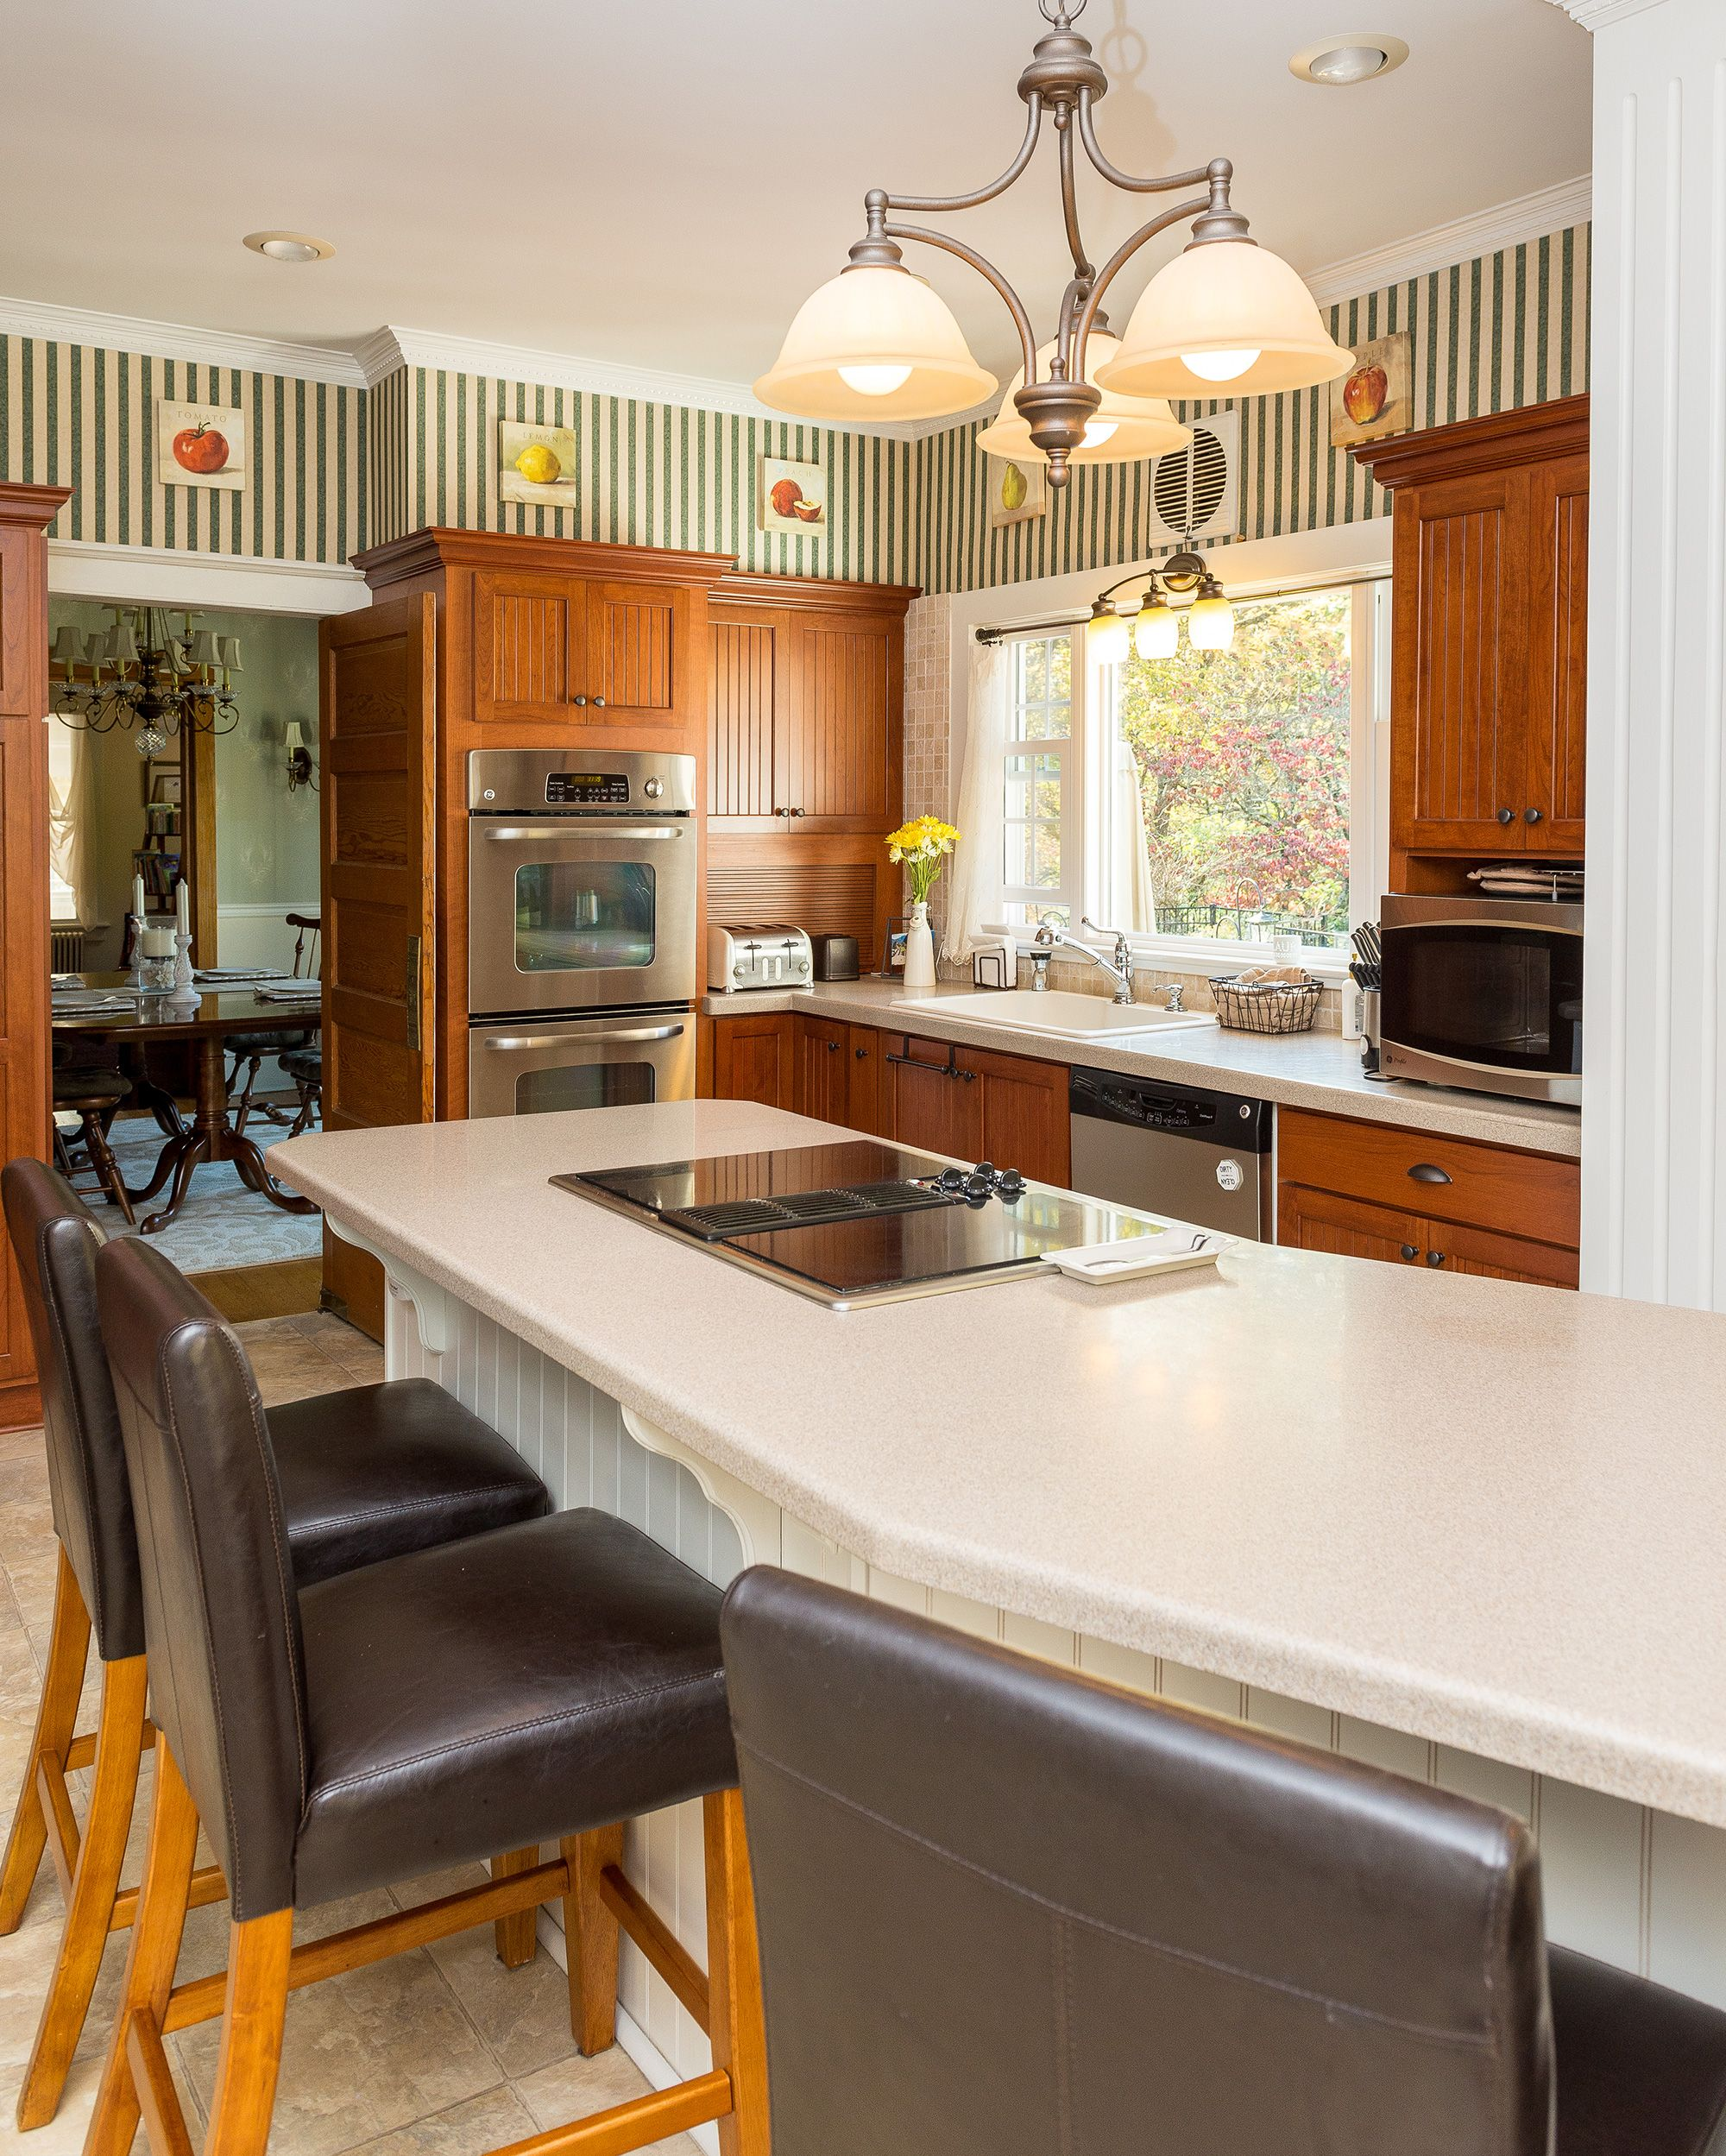 Ways To Refinish Kitchen Cabinets: Which Is Better For Cabinet Refacing: Laminate Or Wood? In